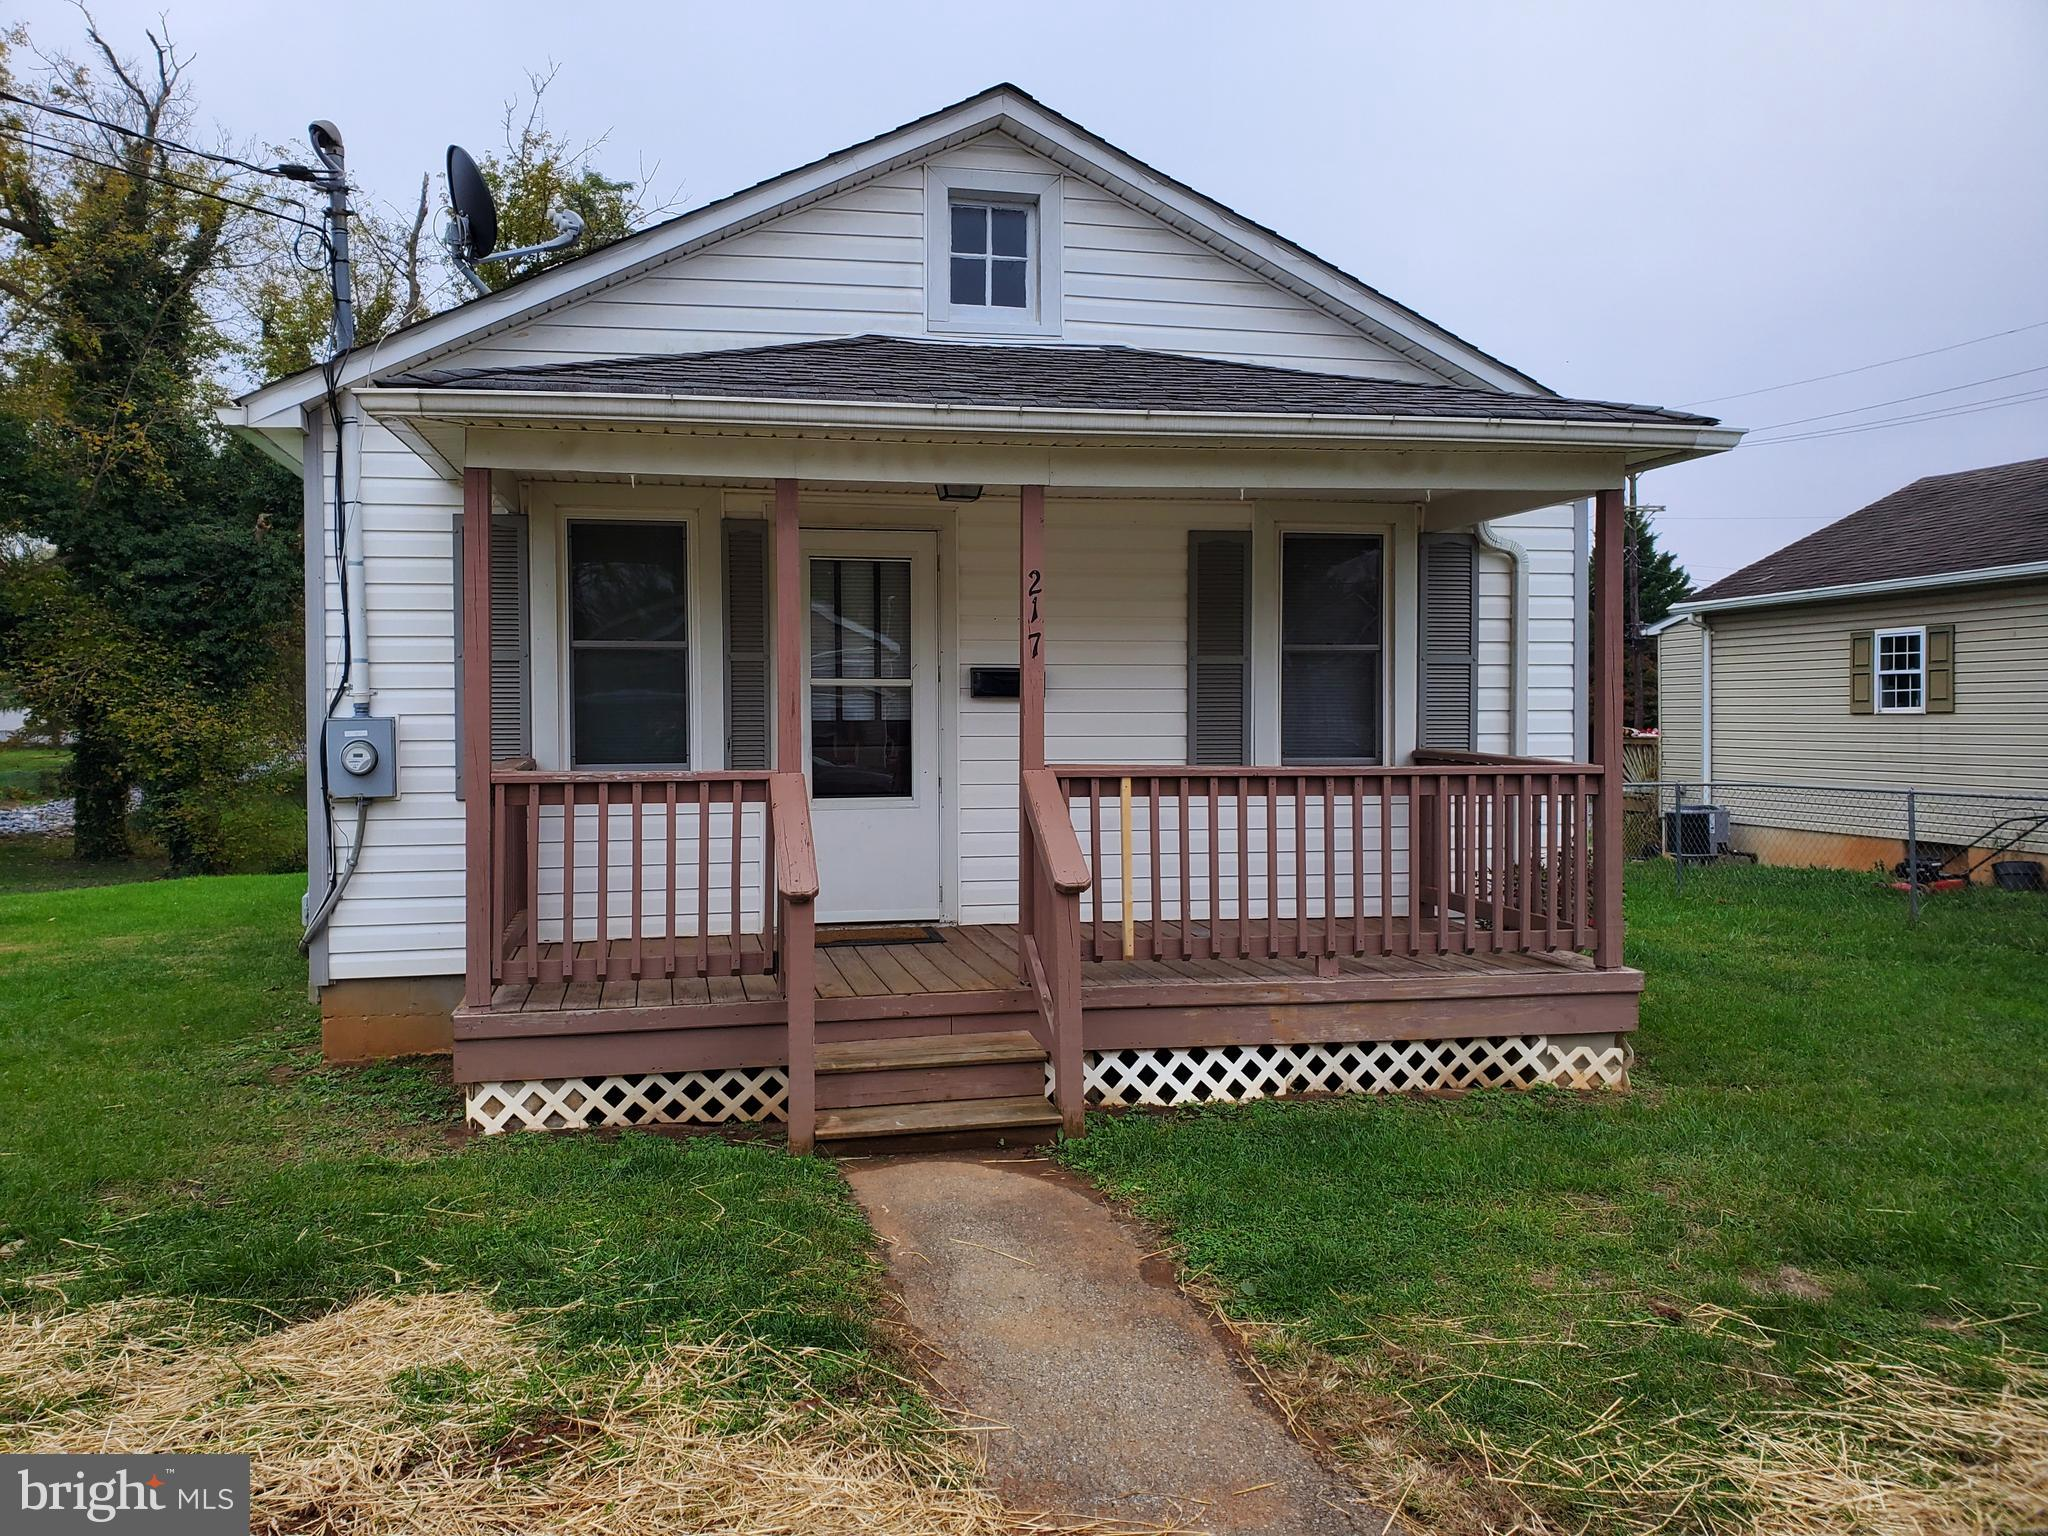 2 bedroom one bath in Ranson, This home is getting a facelift. Painted this week inside and out. Roo